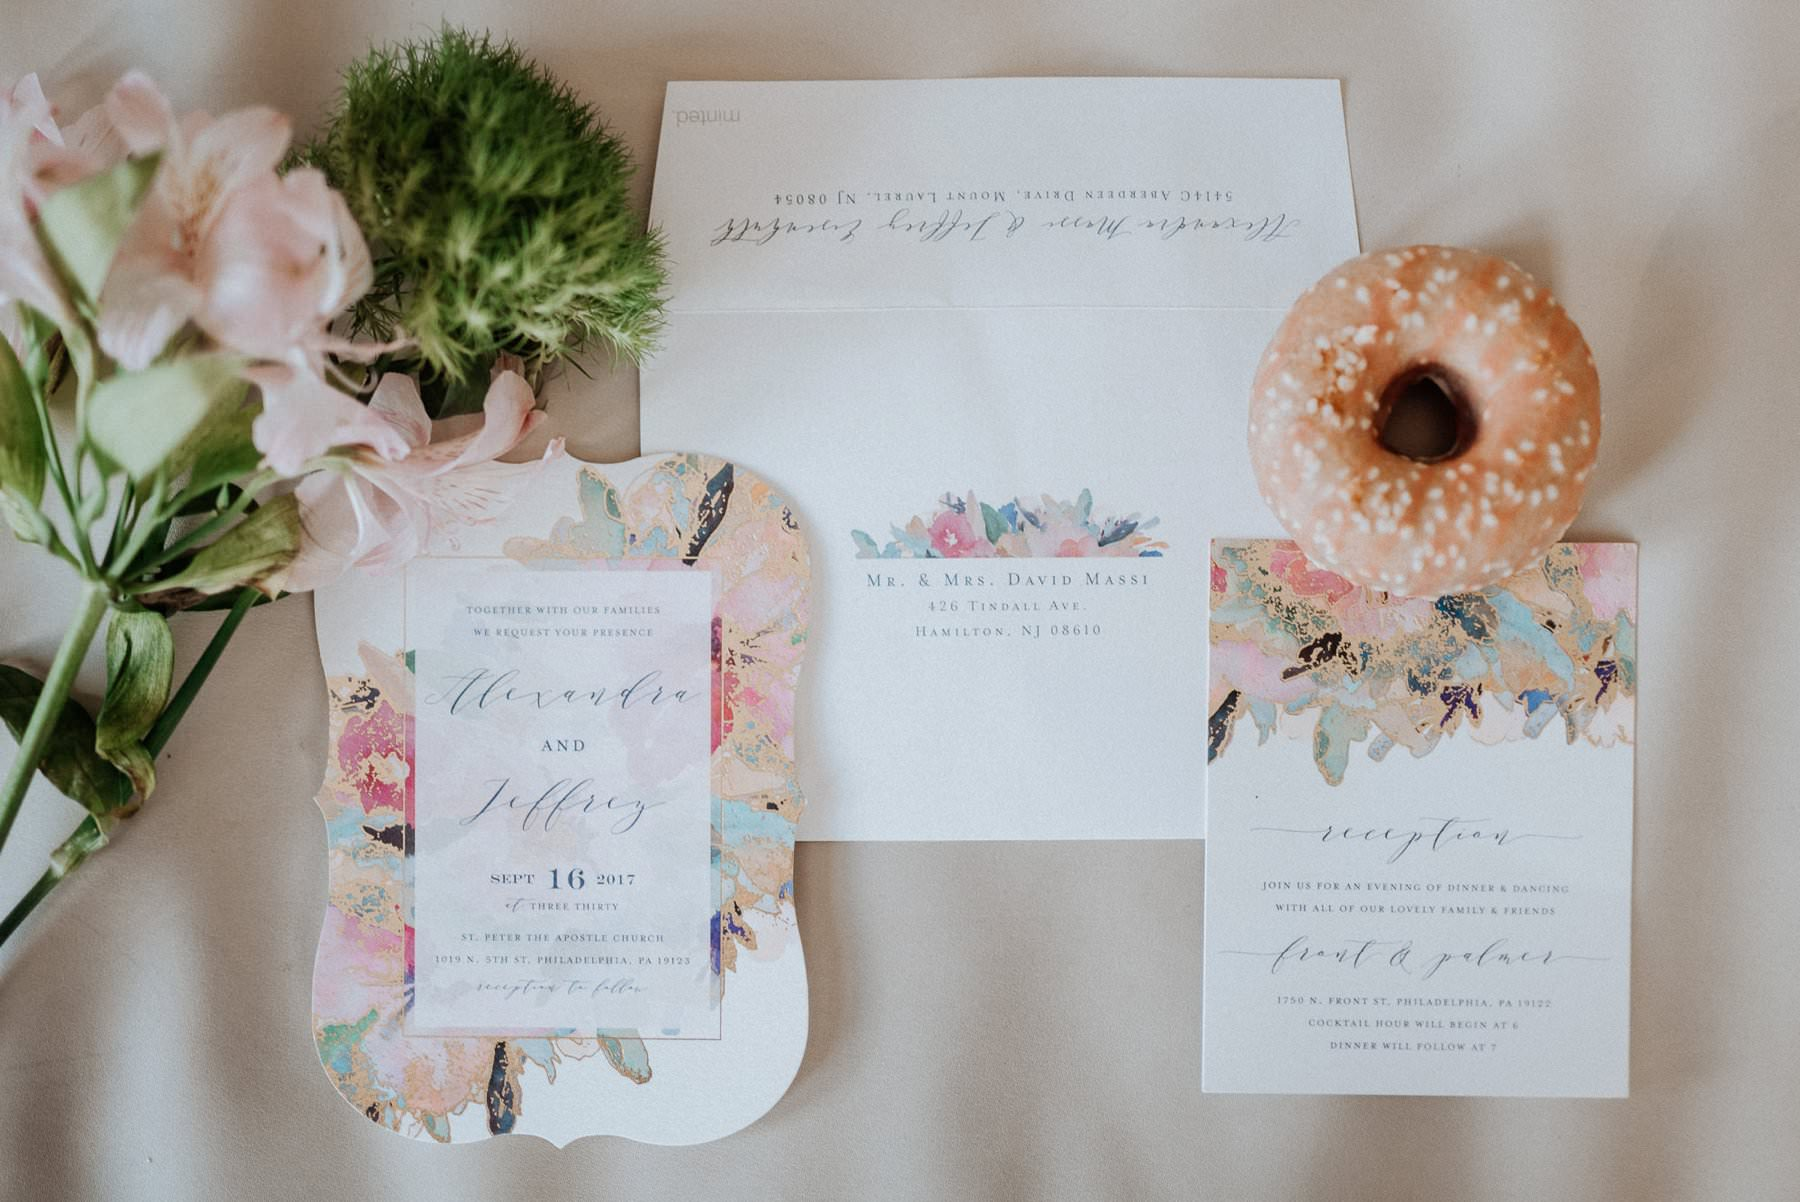 Front_and_Palmer_Wedding004.jpg